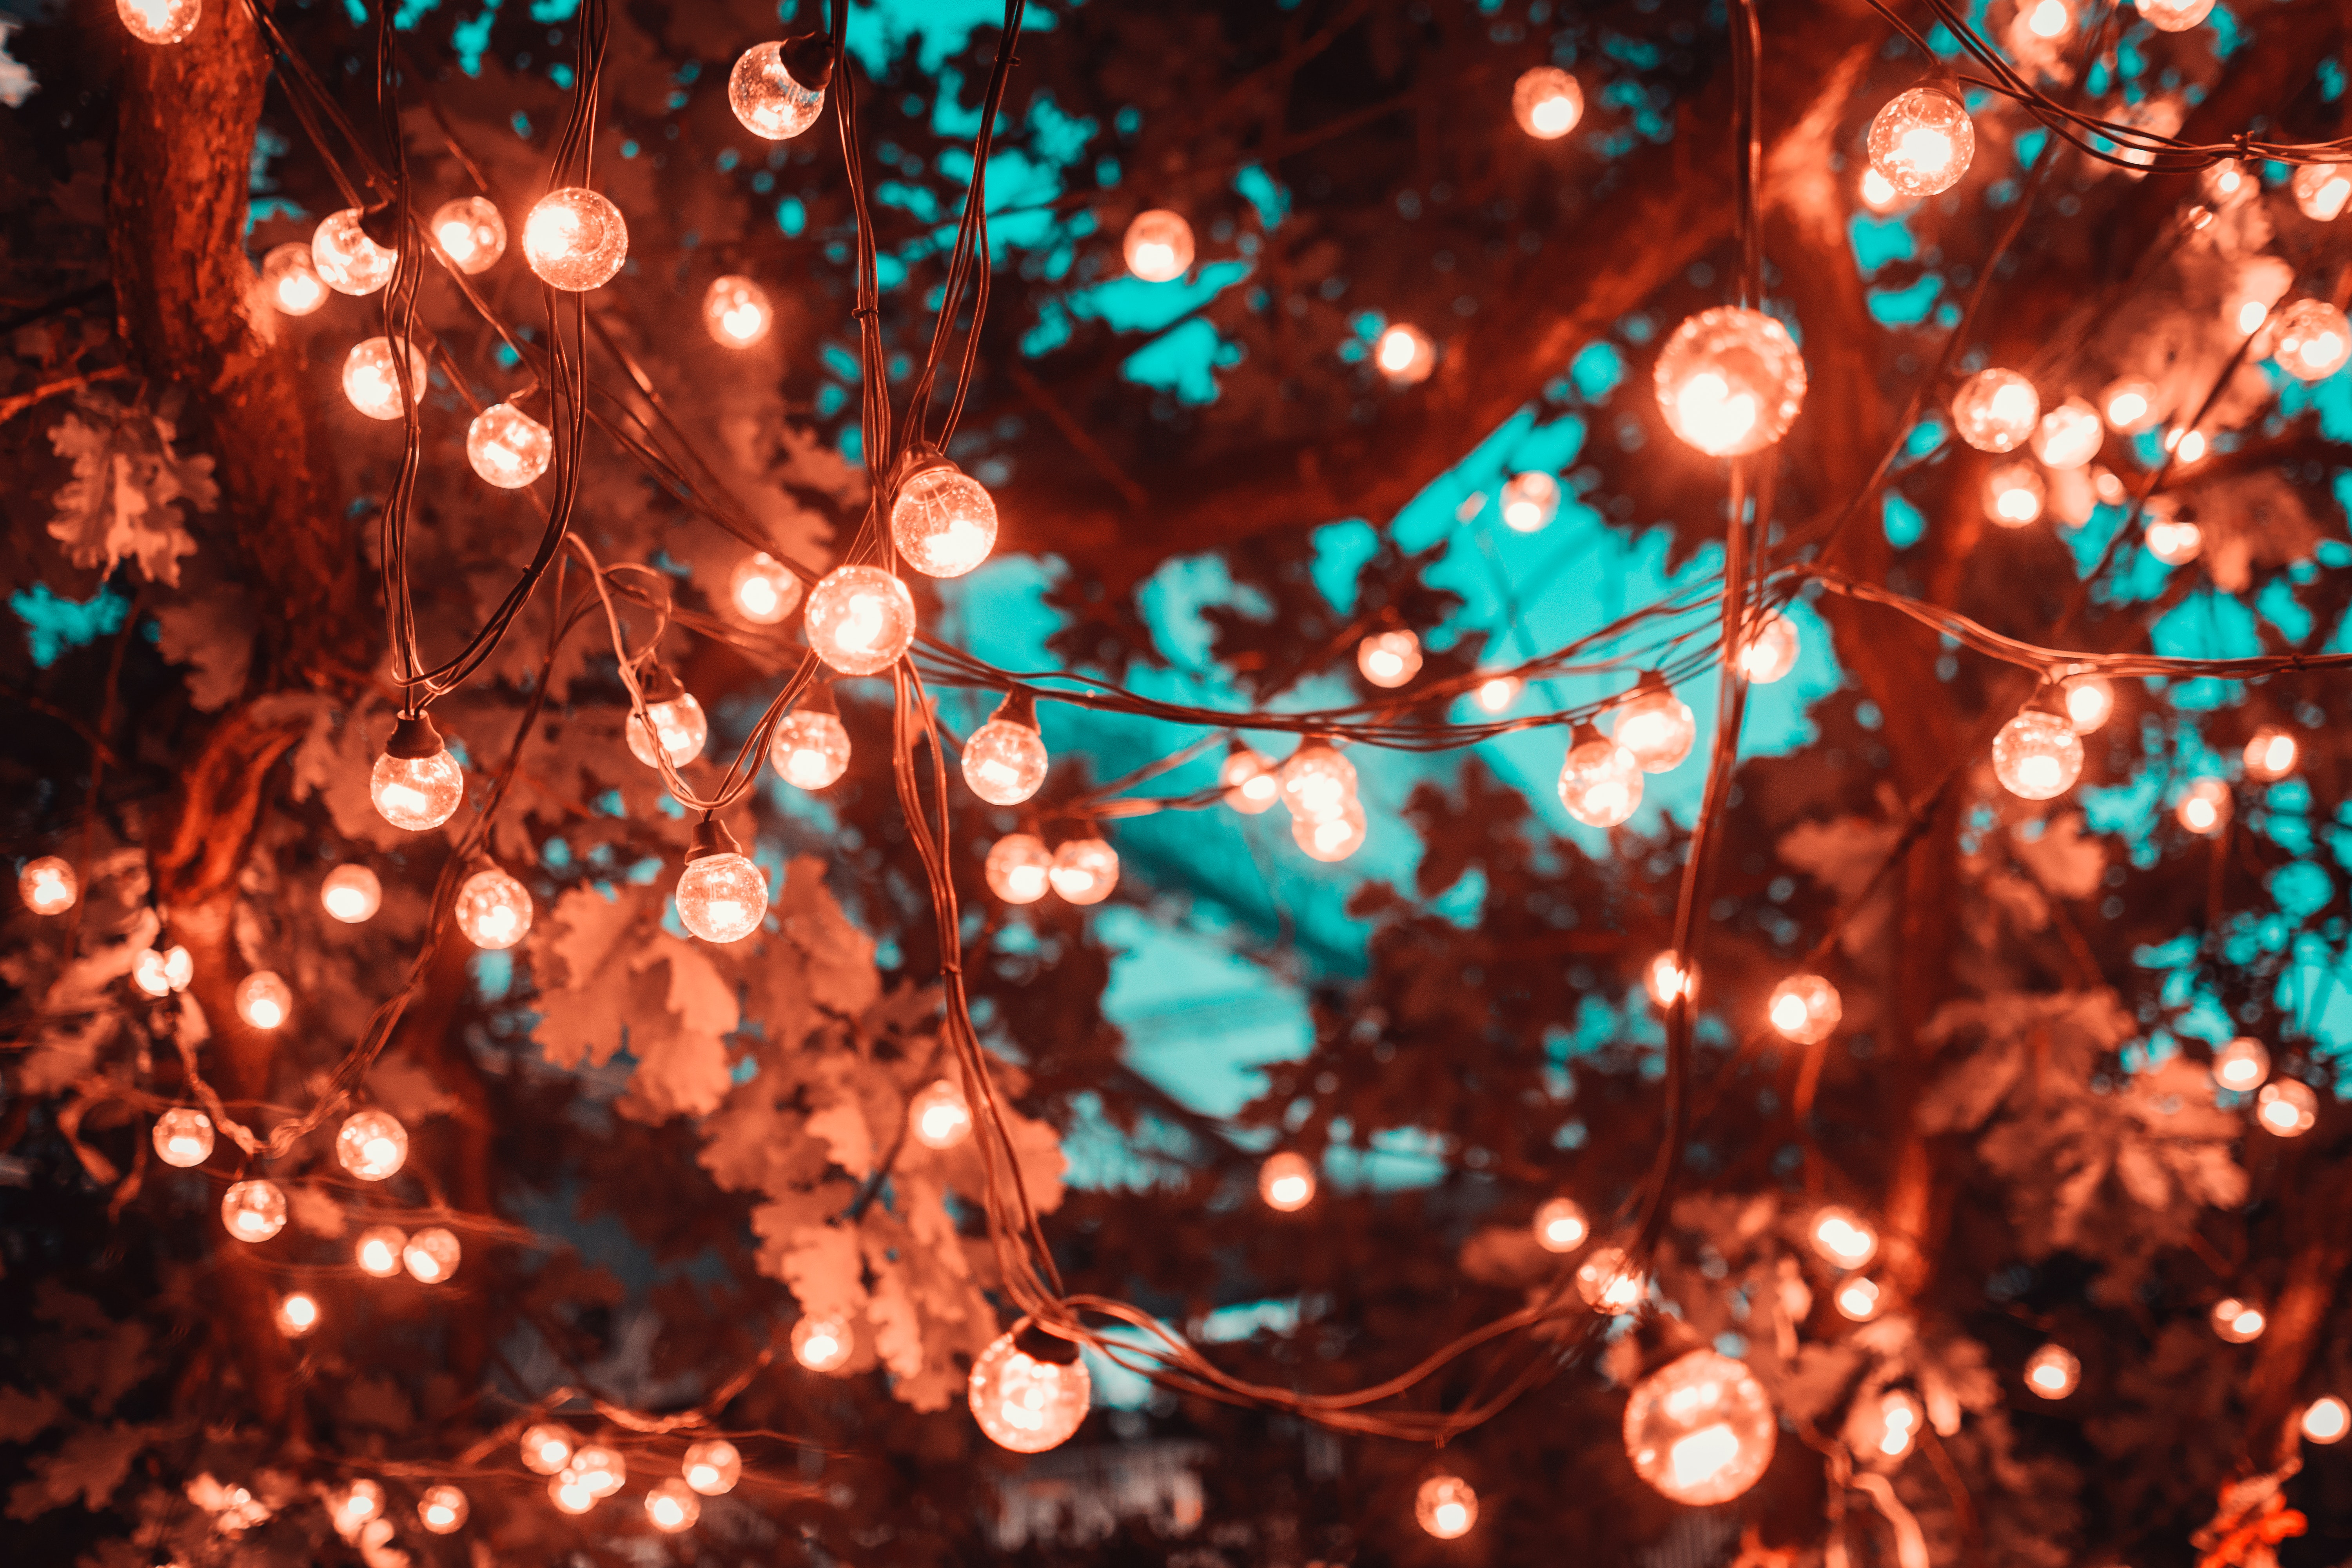 20 Creative Fall Photography Ideas - Brown String Lights in Tree by Artem Saranin via Pexels | https://www.roseclearfield.com